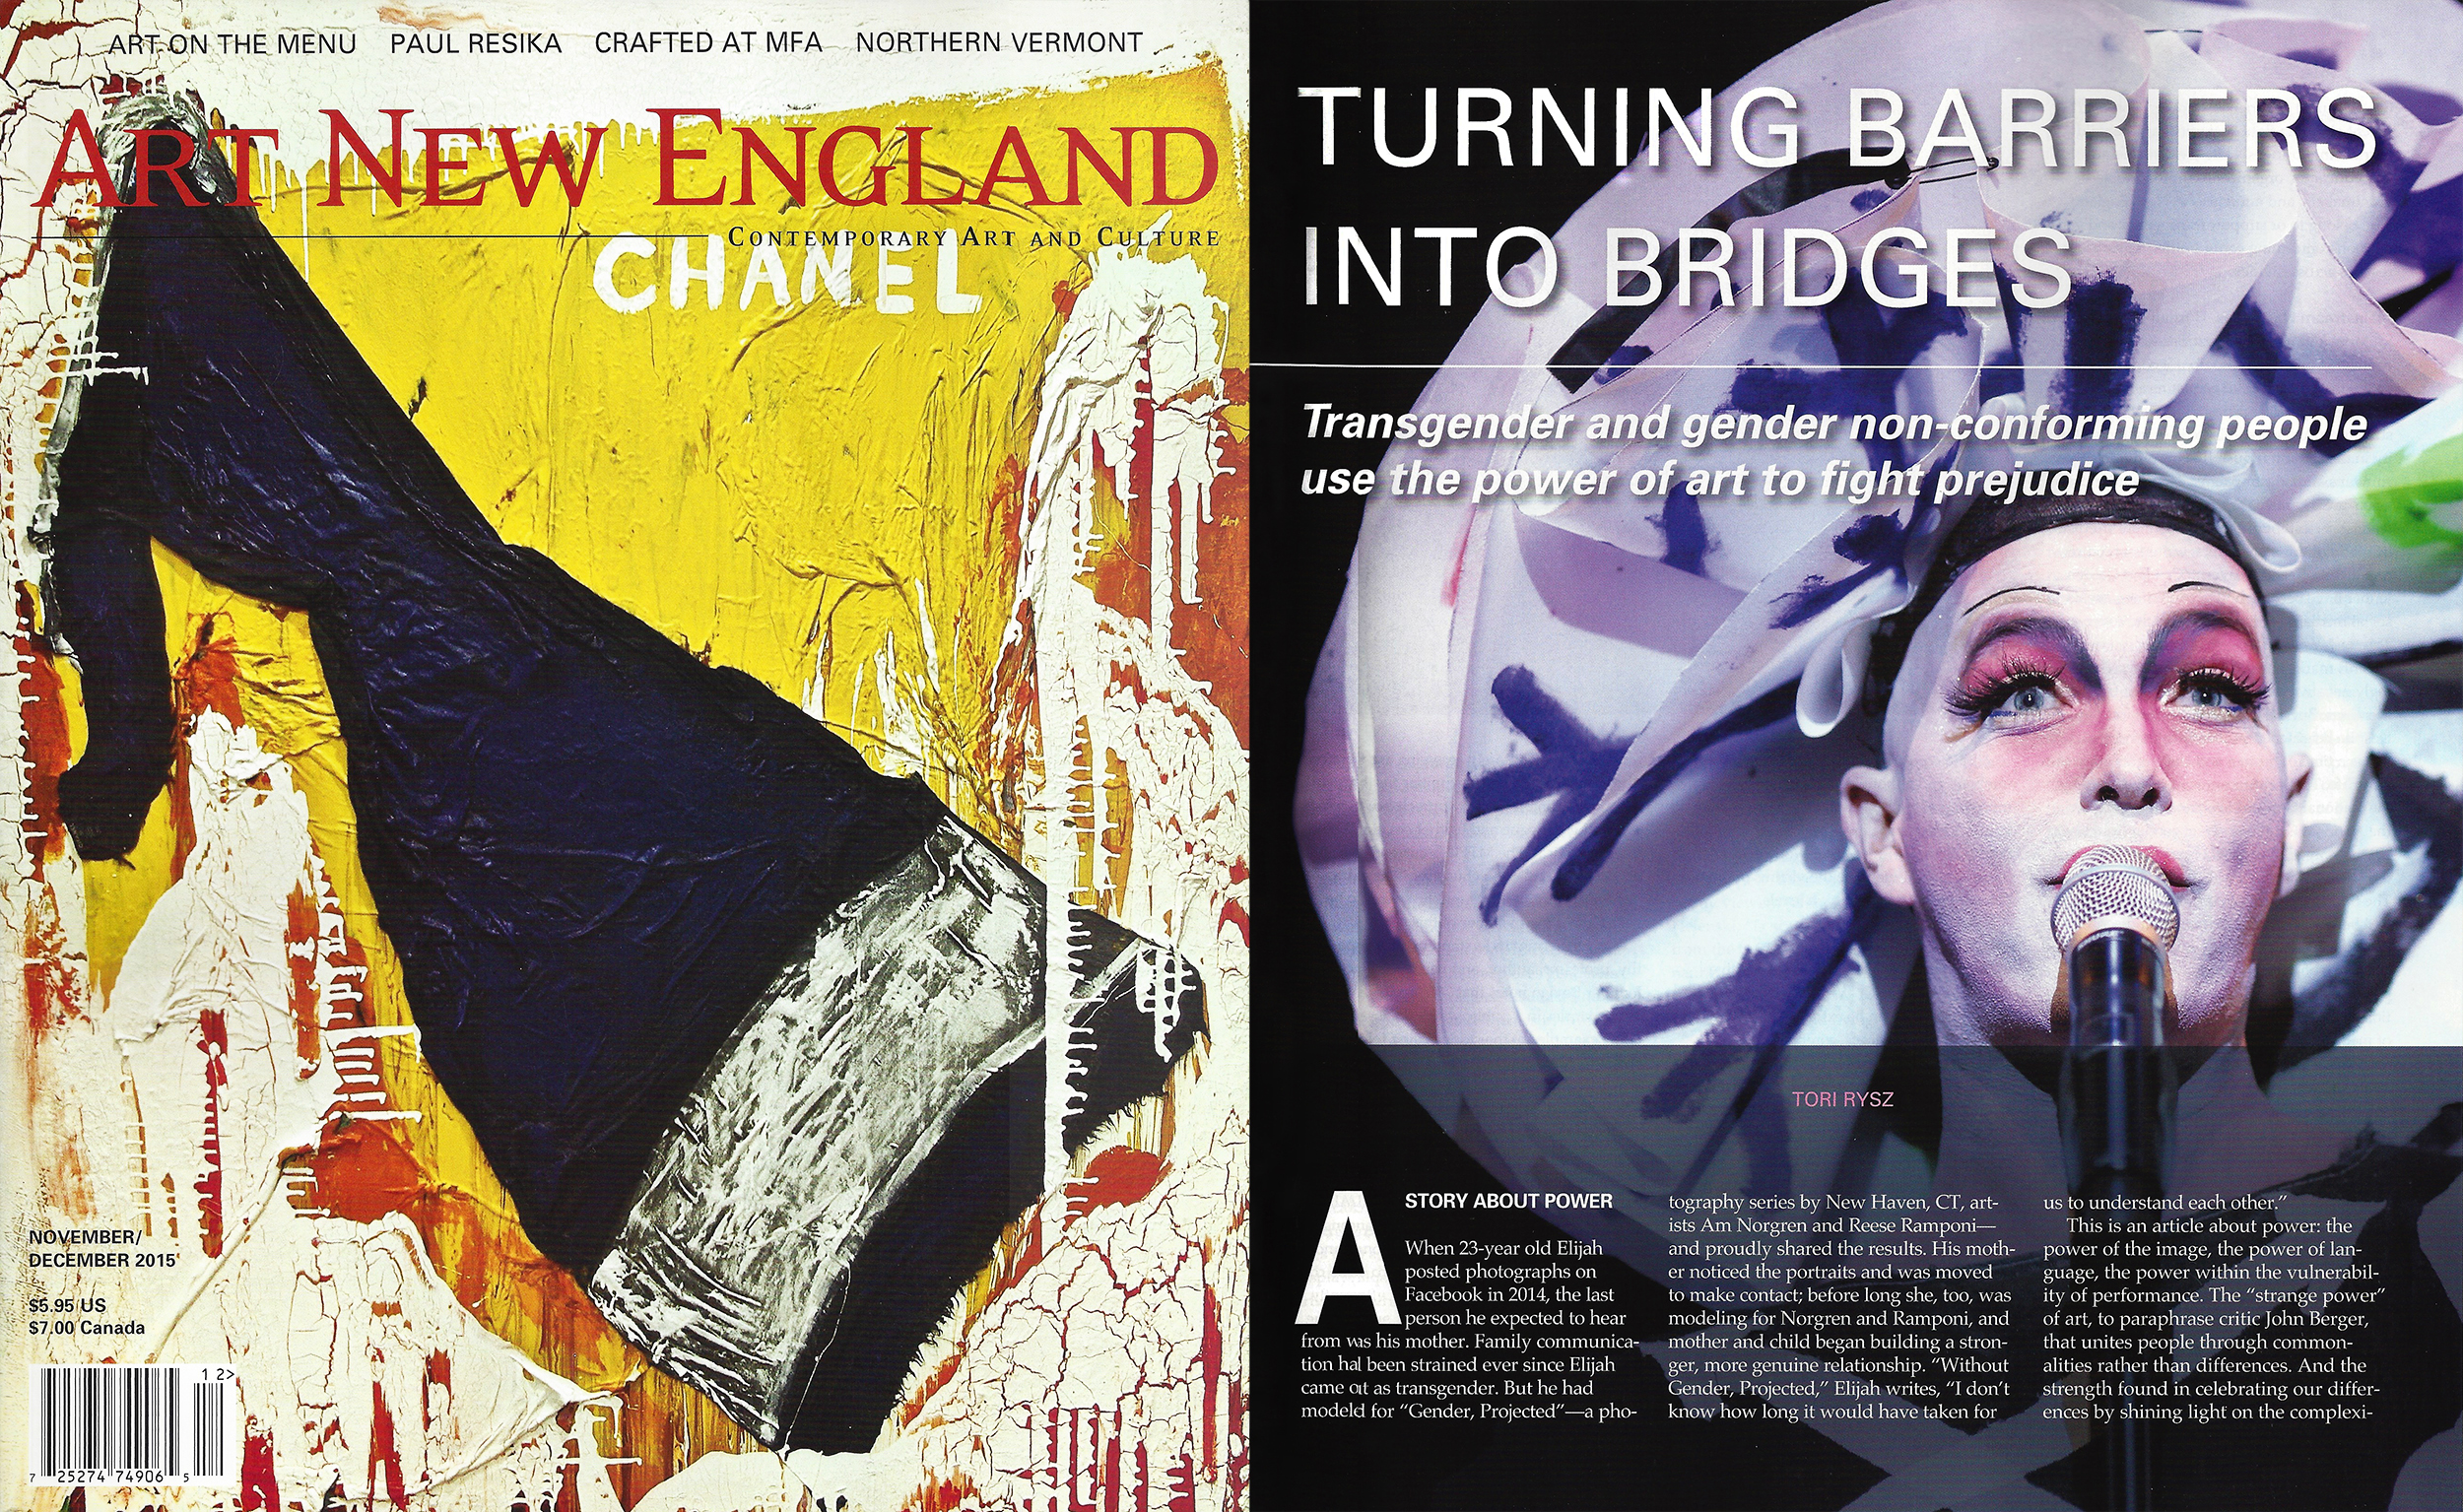 Art New England Magazine Nov/Dec 2015 issue, cover and featured article 'Turning Barriers into Bridges' by Tori Rysz, page 31.